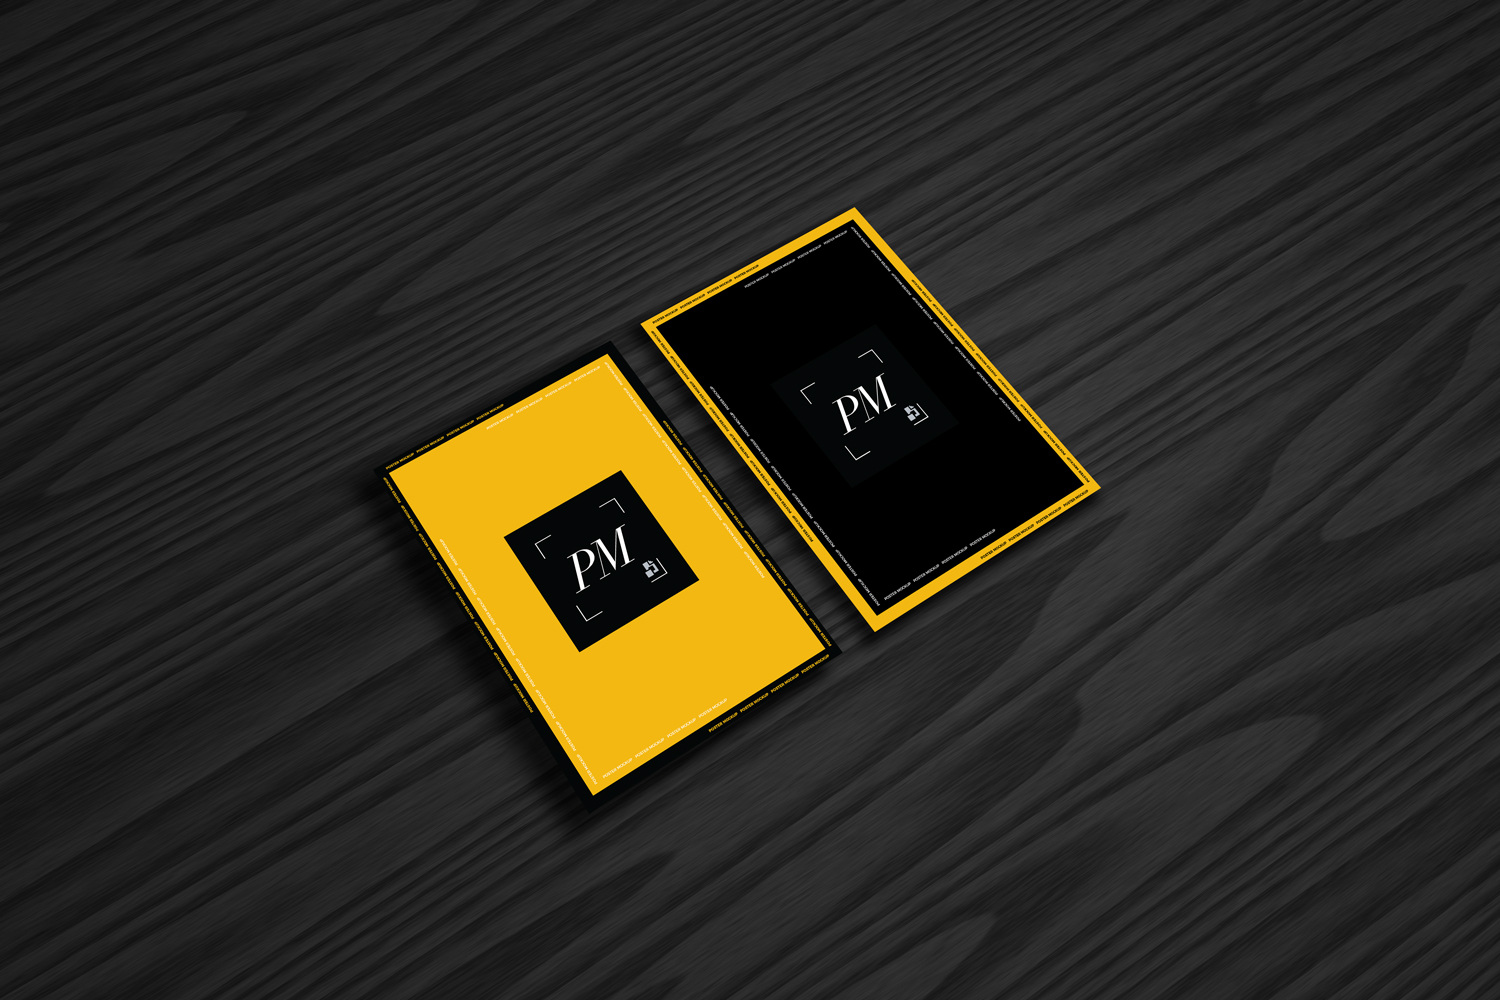 Free-Posters-Mockup-on-Black-Wooden-Background-600